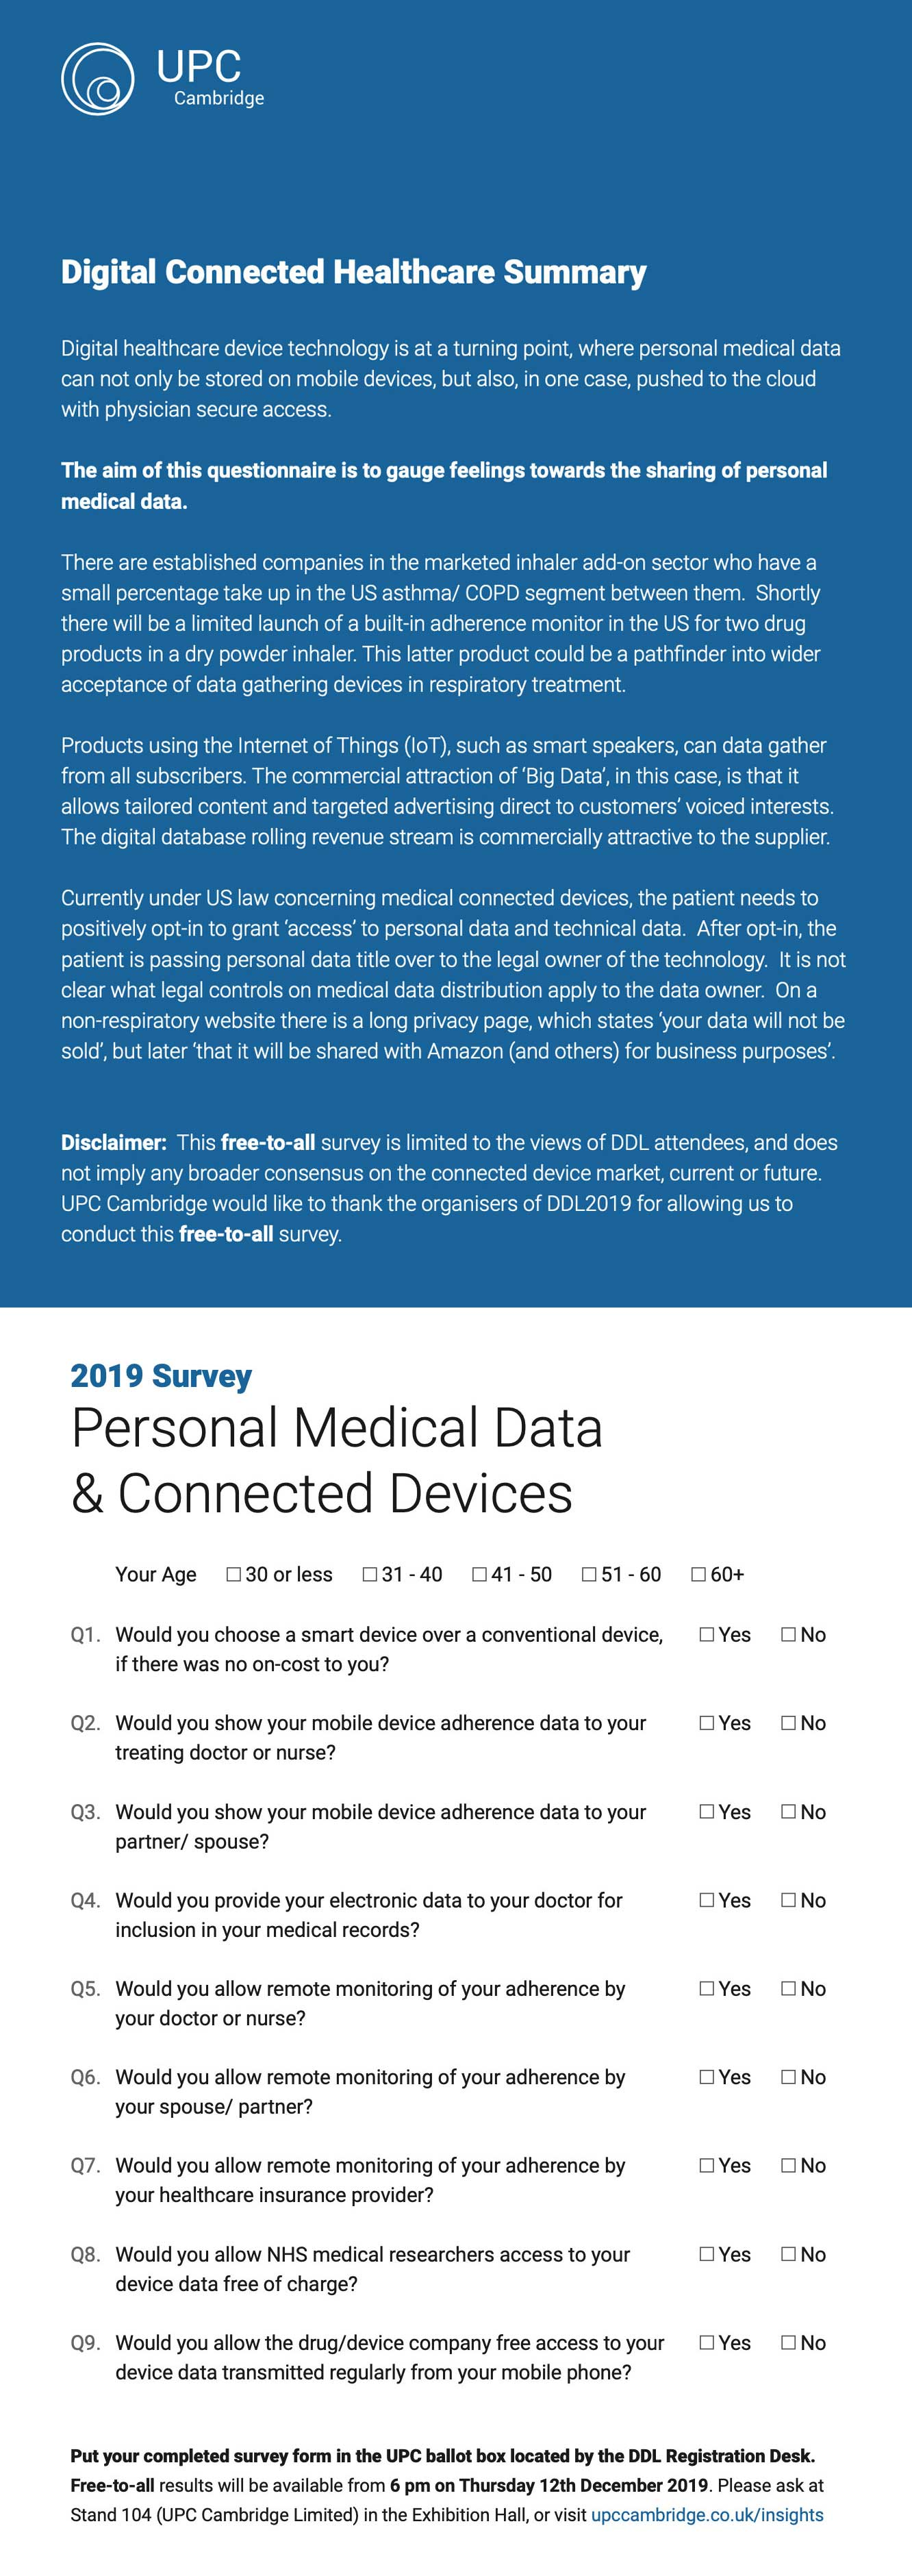 Survey provided to attendees of DDL2019